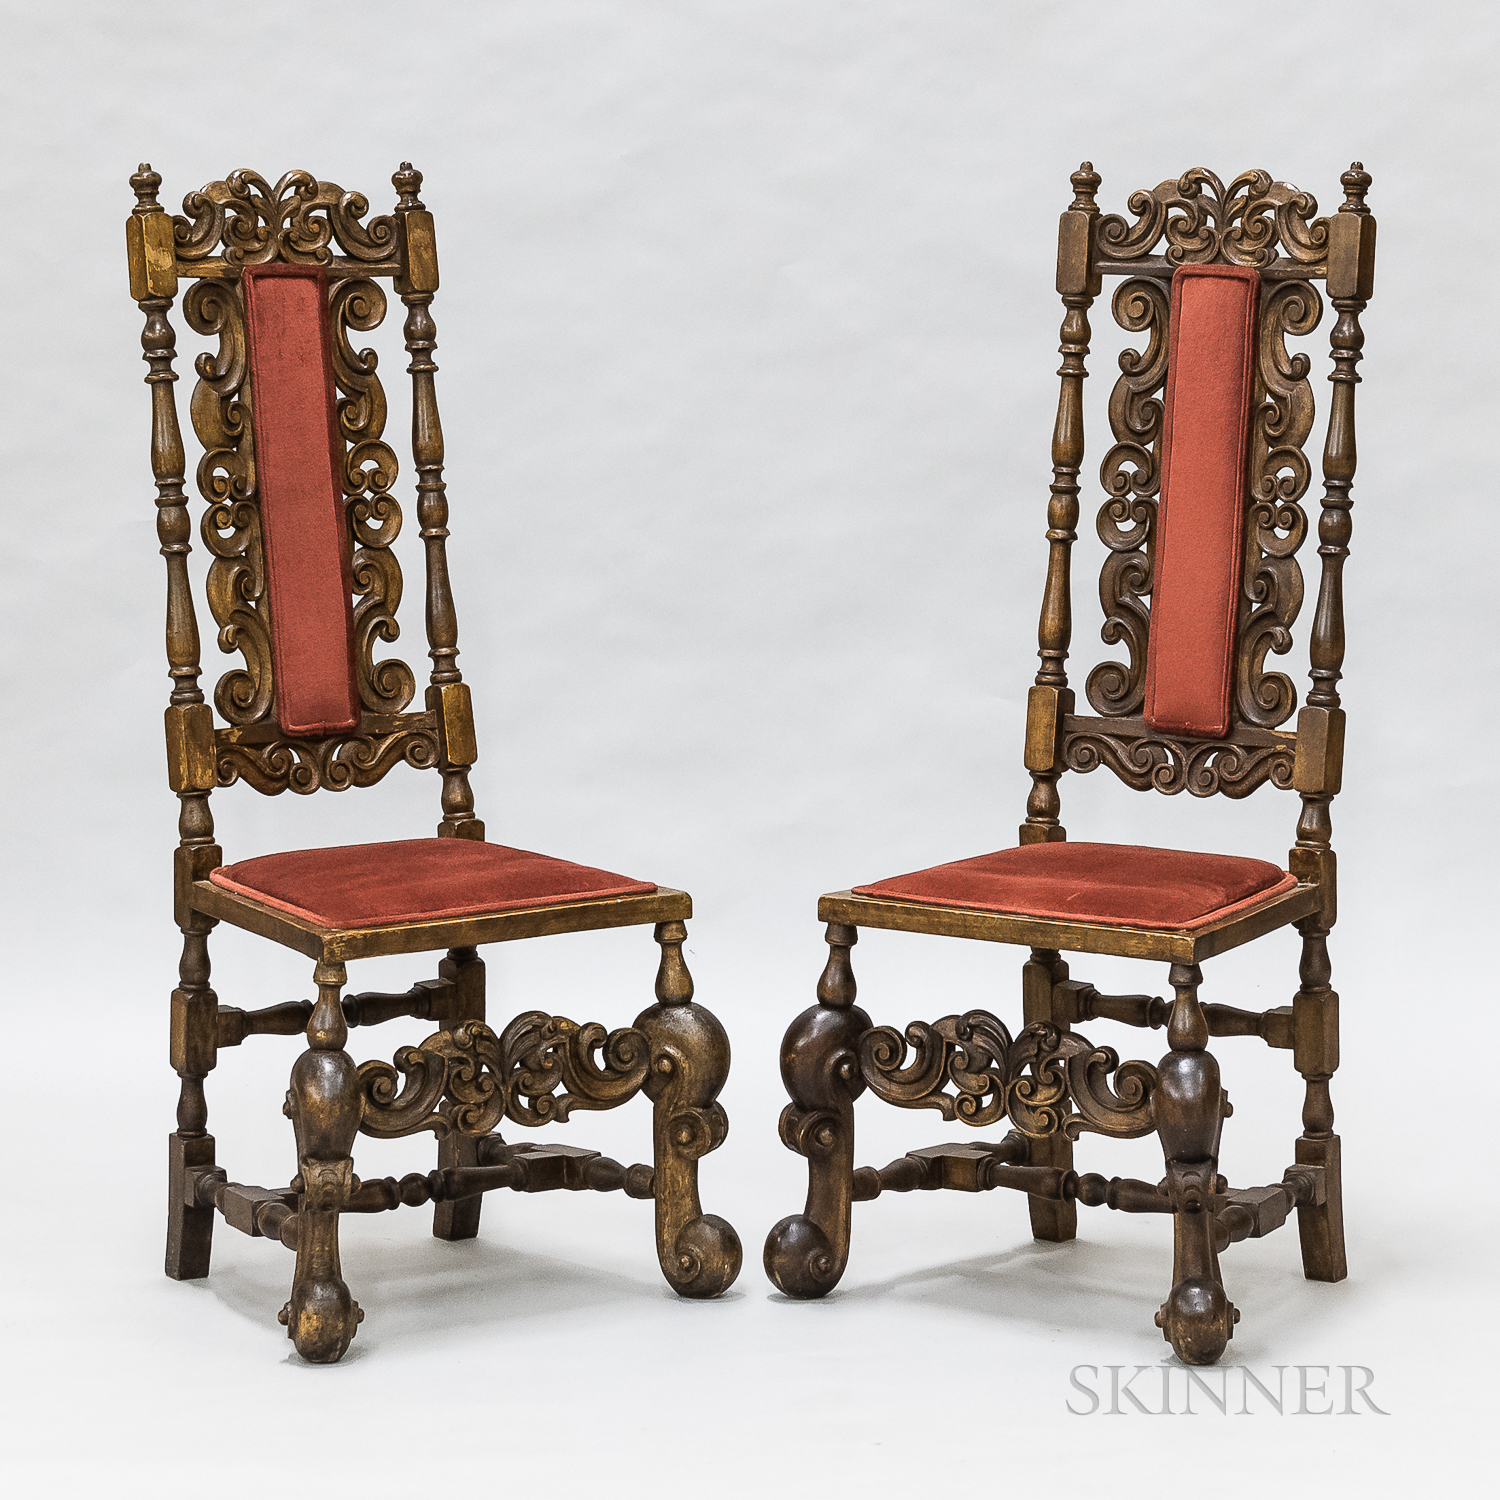 Pair of Baroque-style Carved and Upholstered Walnut Side Chairs